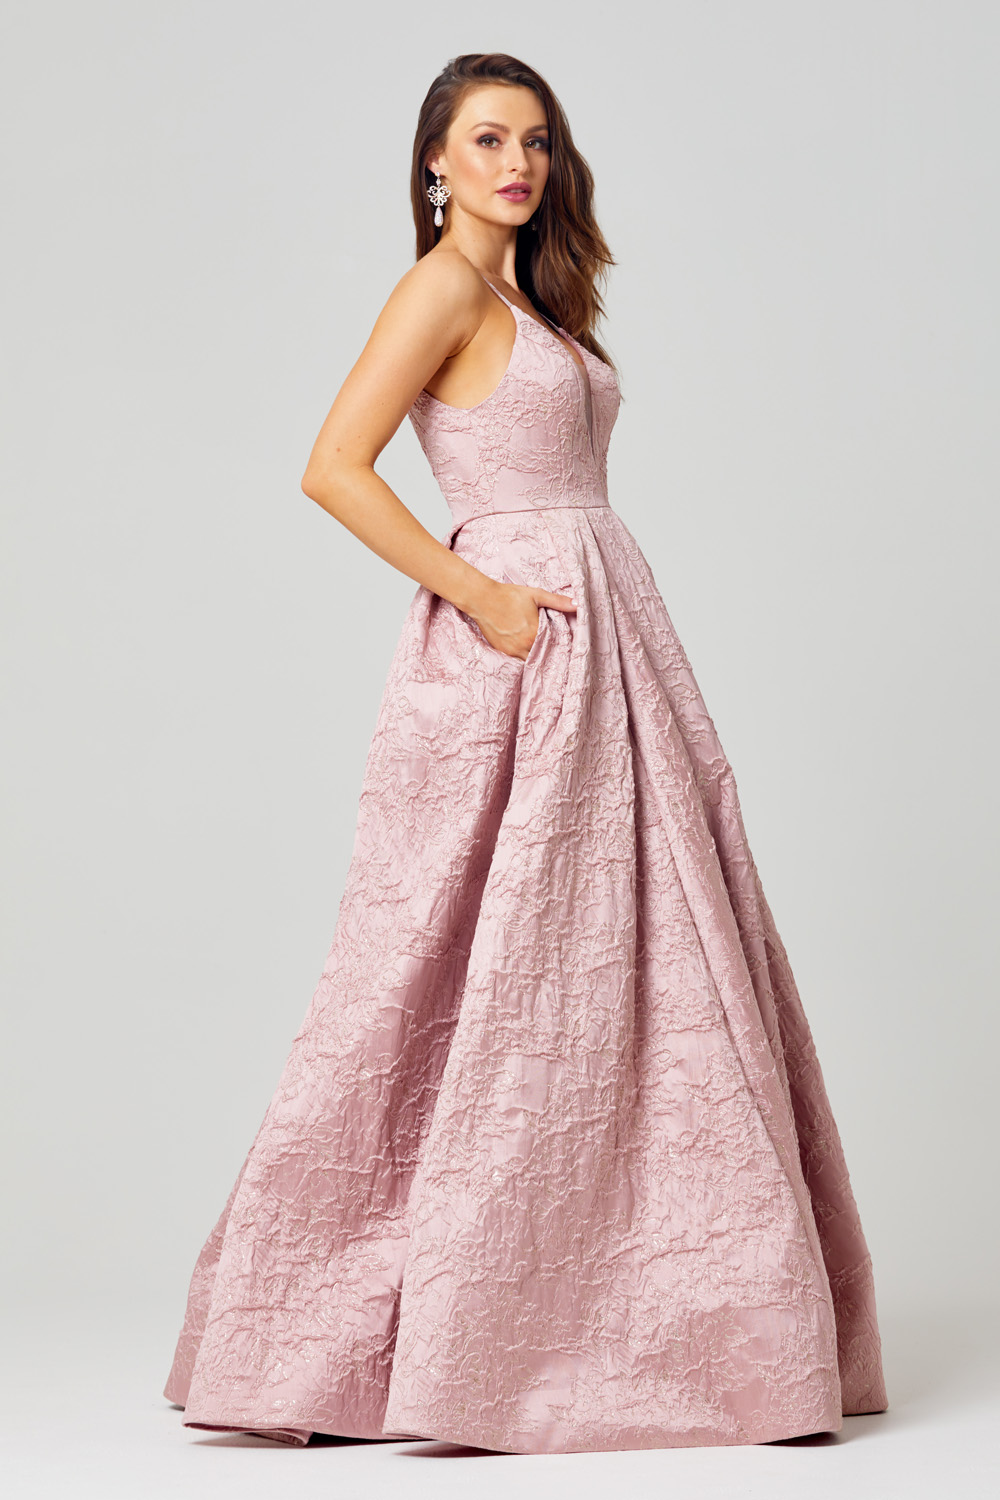 PO812 Rosa formal dress side angle